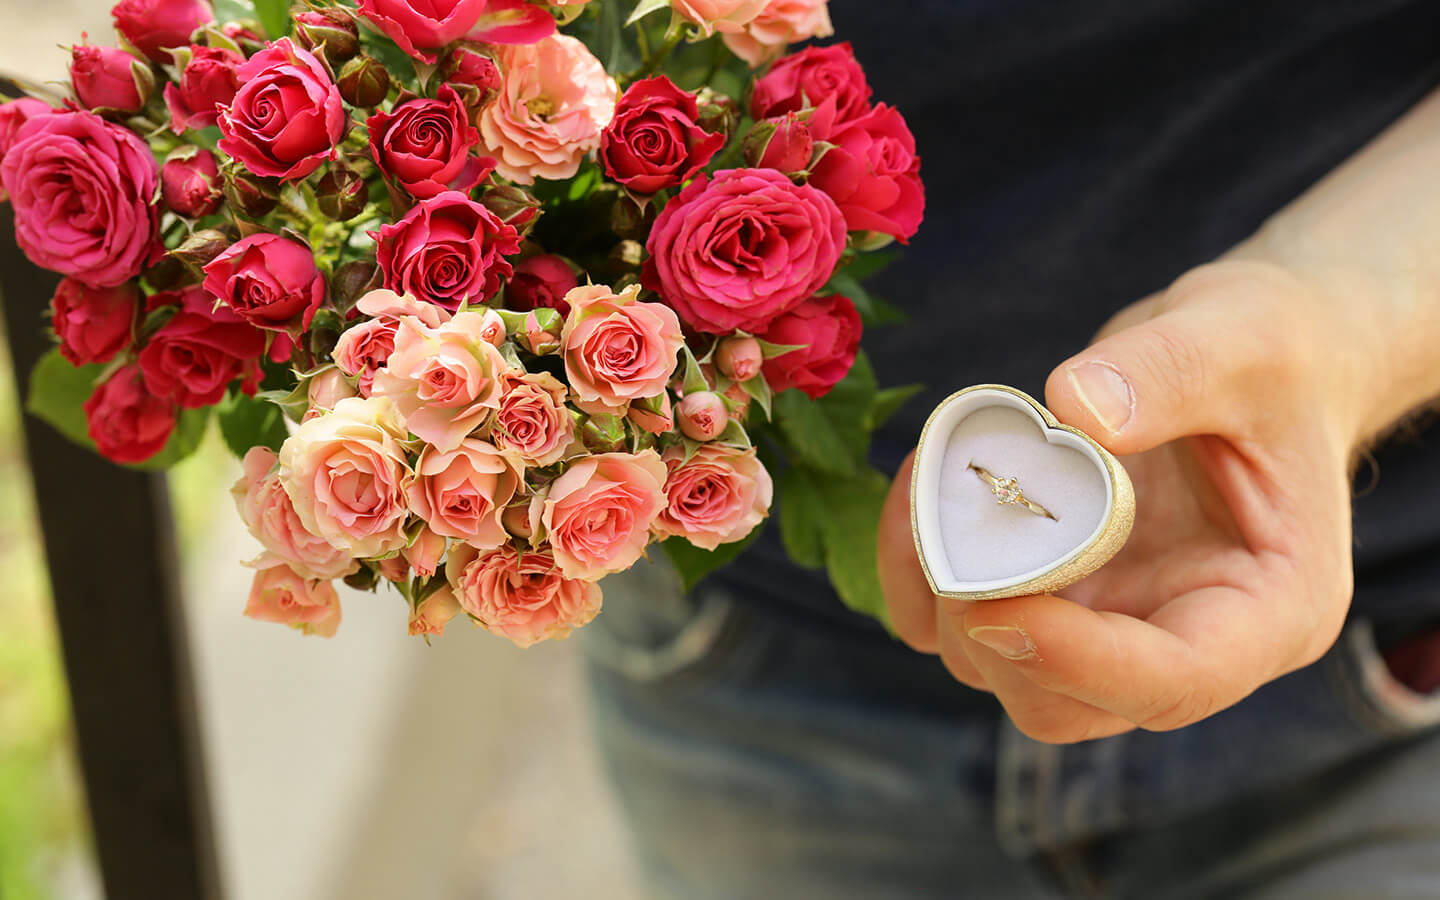 Flowers and a ring